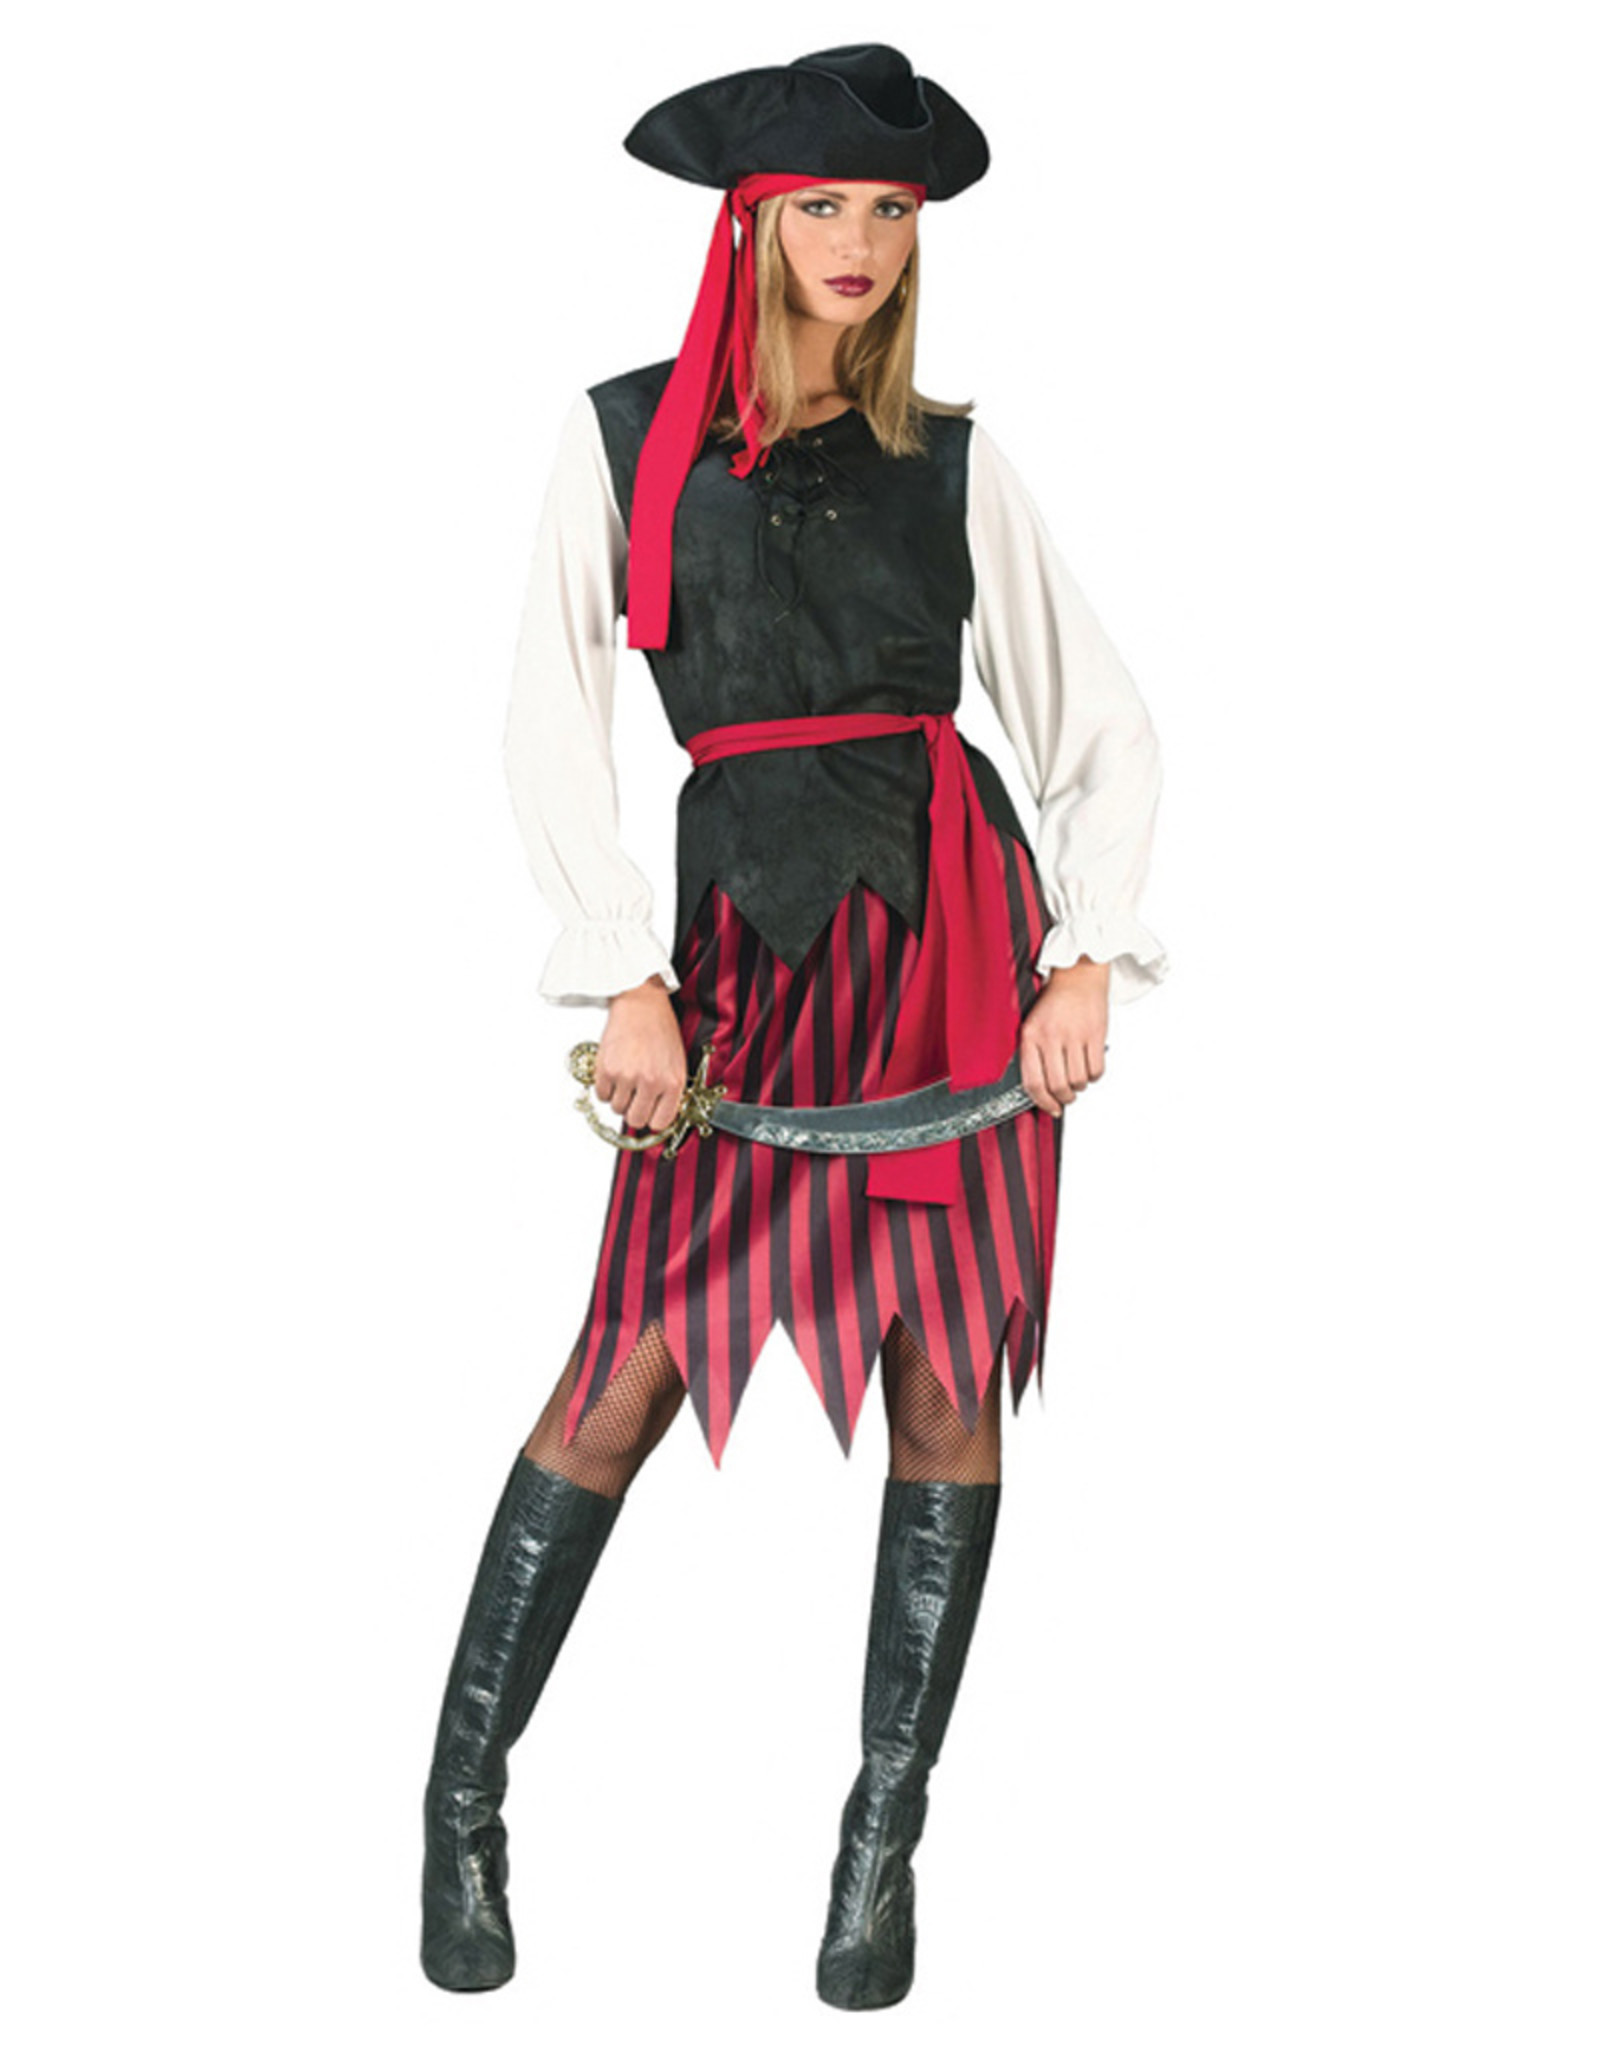 Caribbean Pirate Costume - Women's